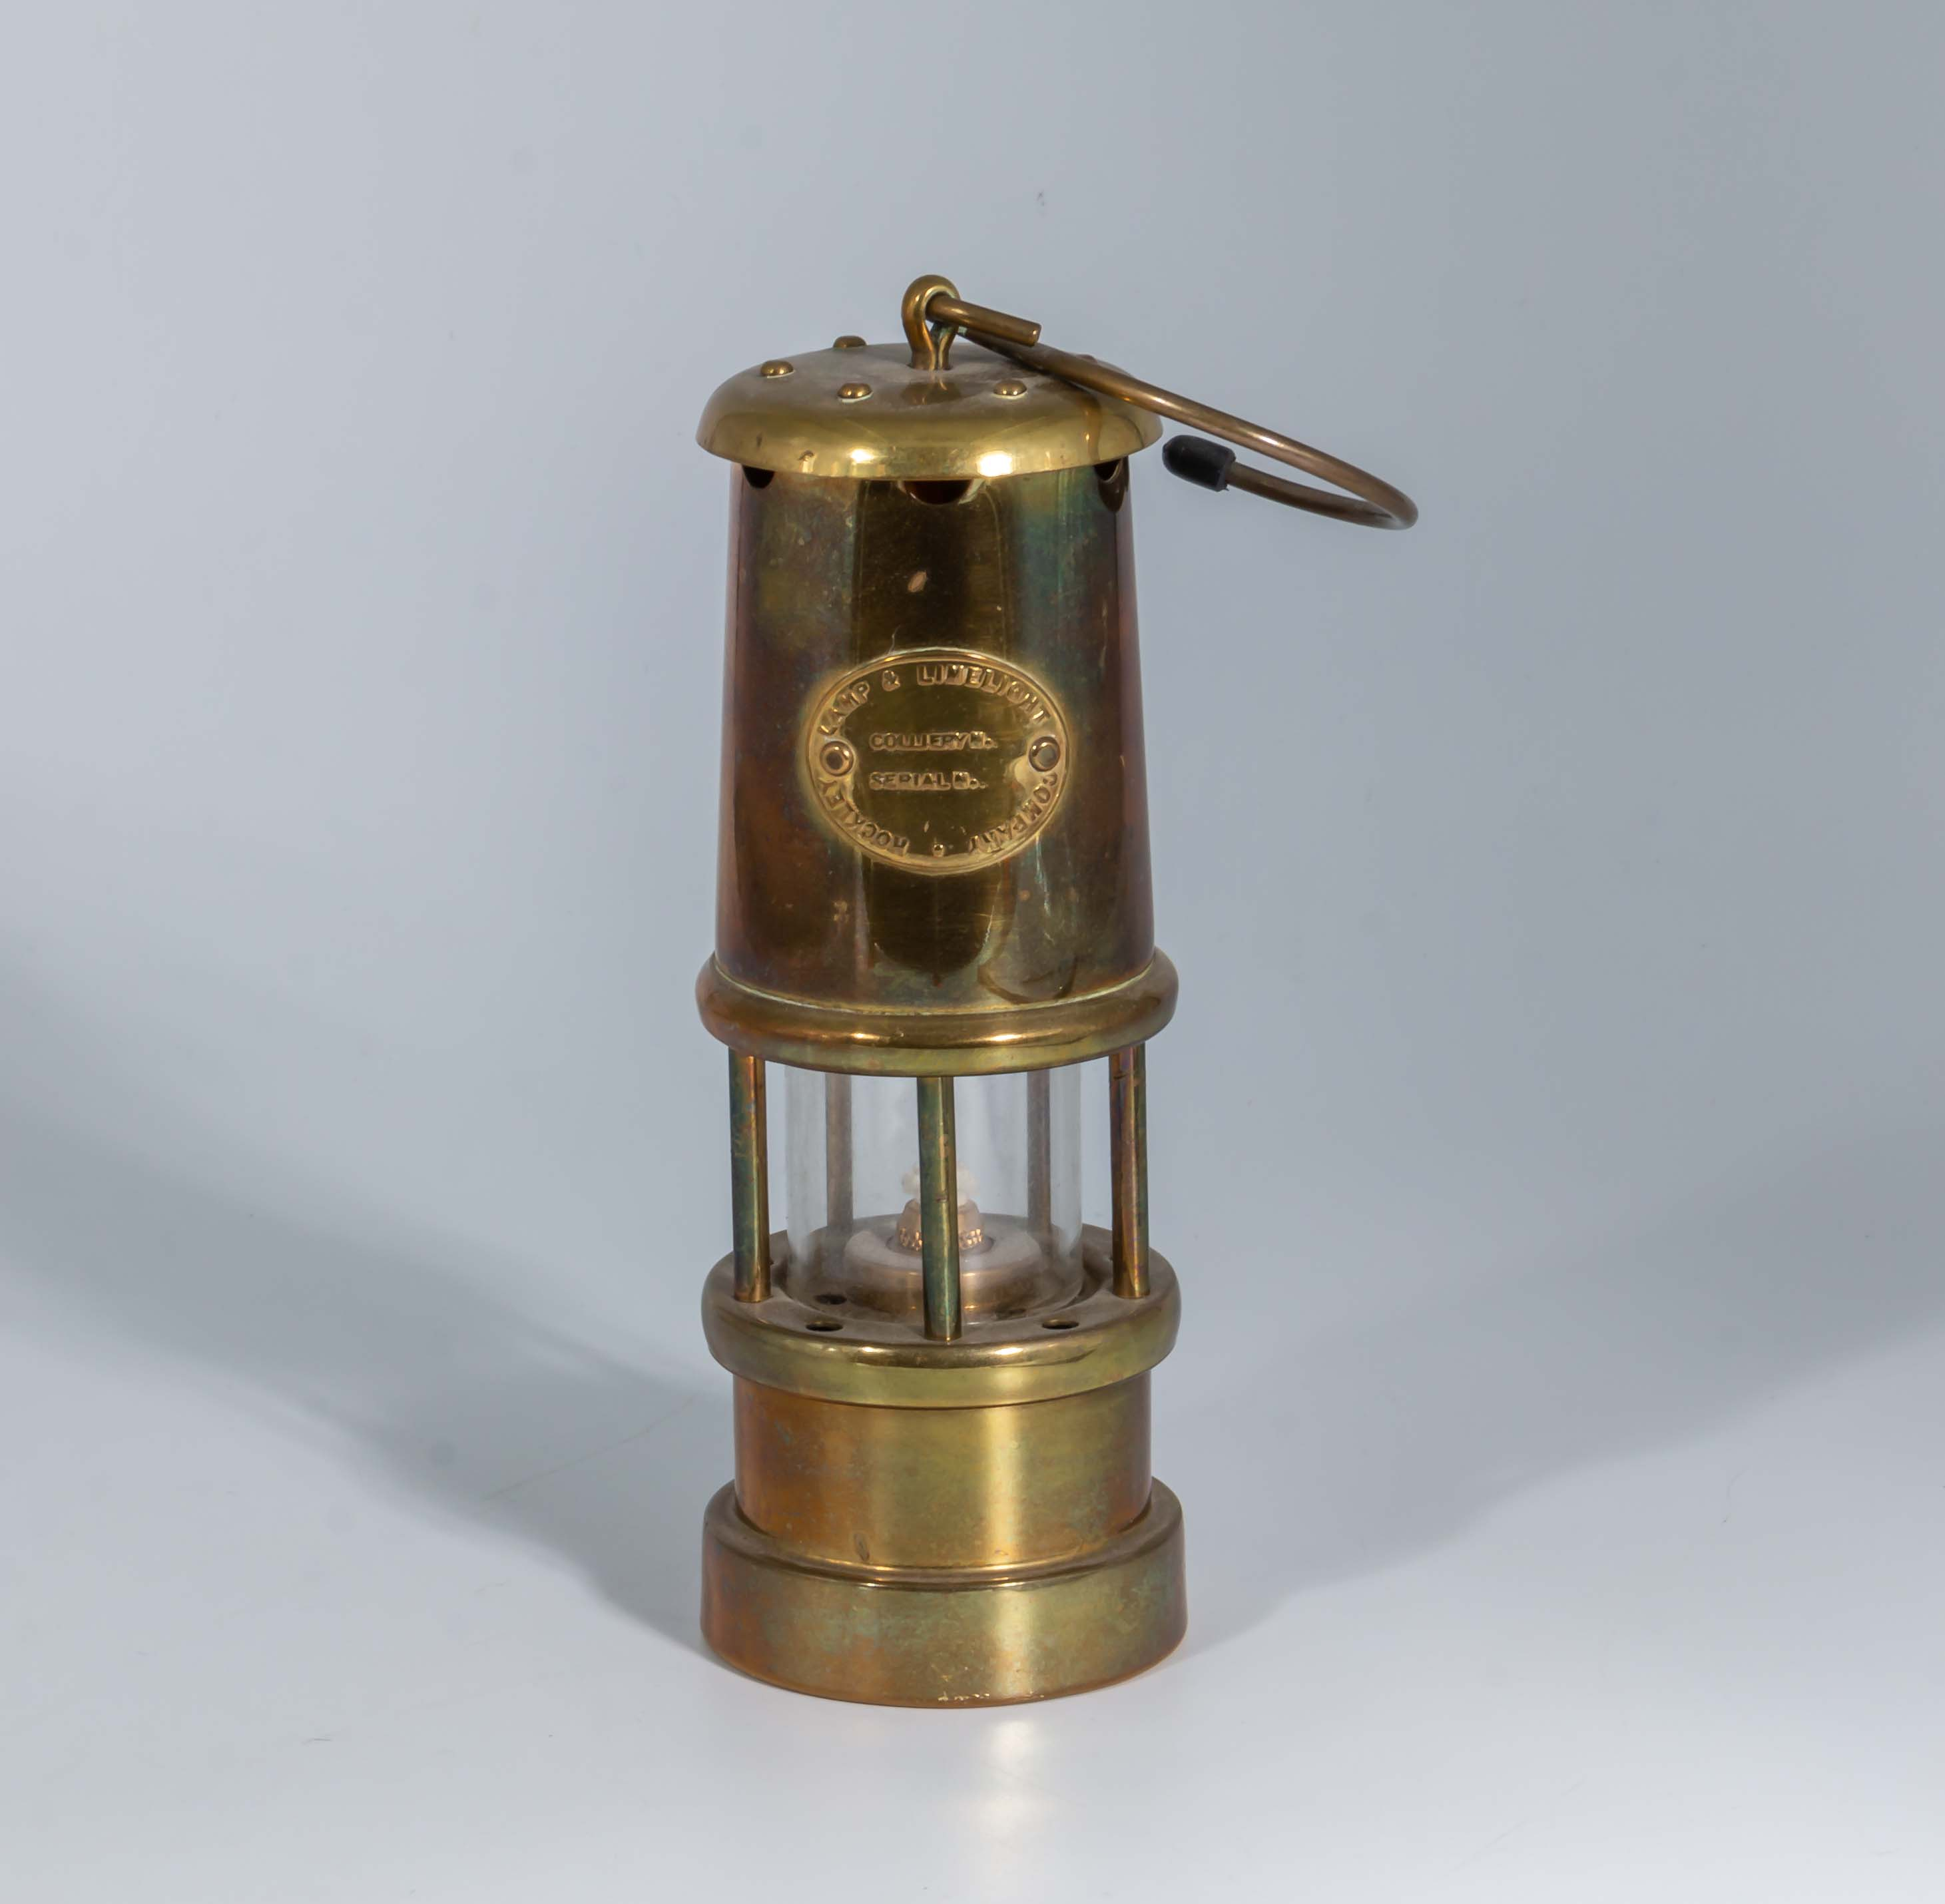 Lot 23 - A small Davy lamp